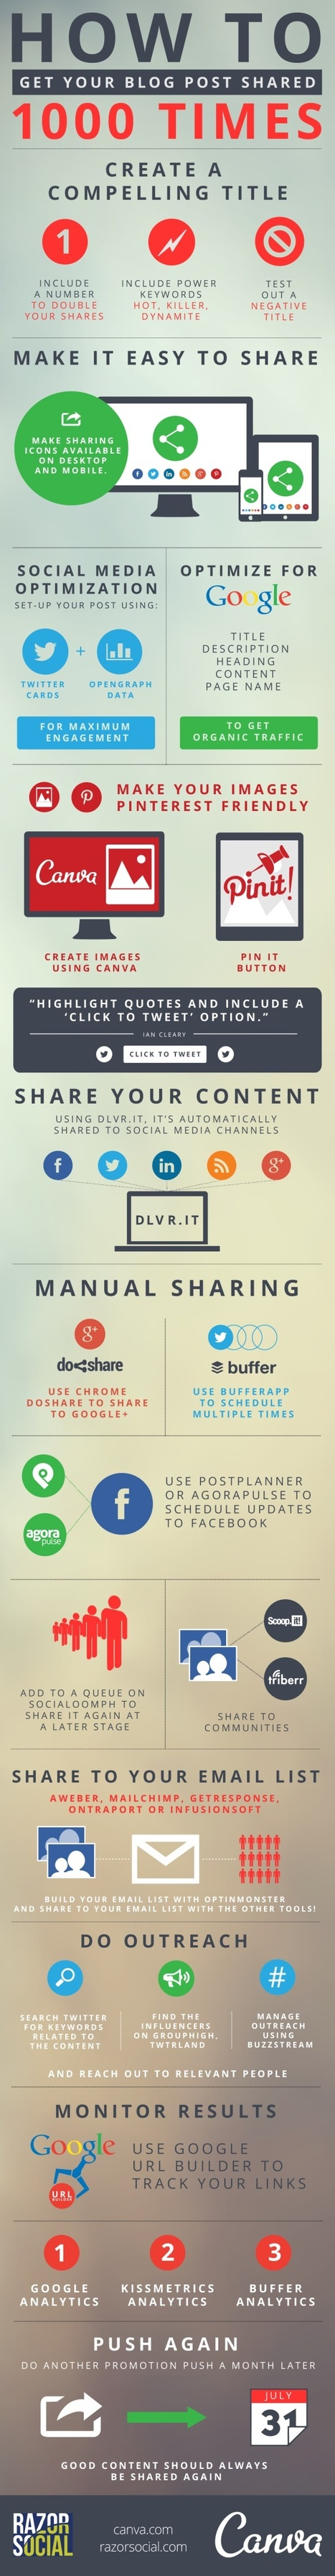 How To Get Your Blog Post Shared 1,000 Times [INFOGRAPHIC] | MarketingHits | Scoop.it